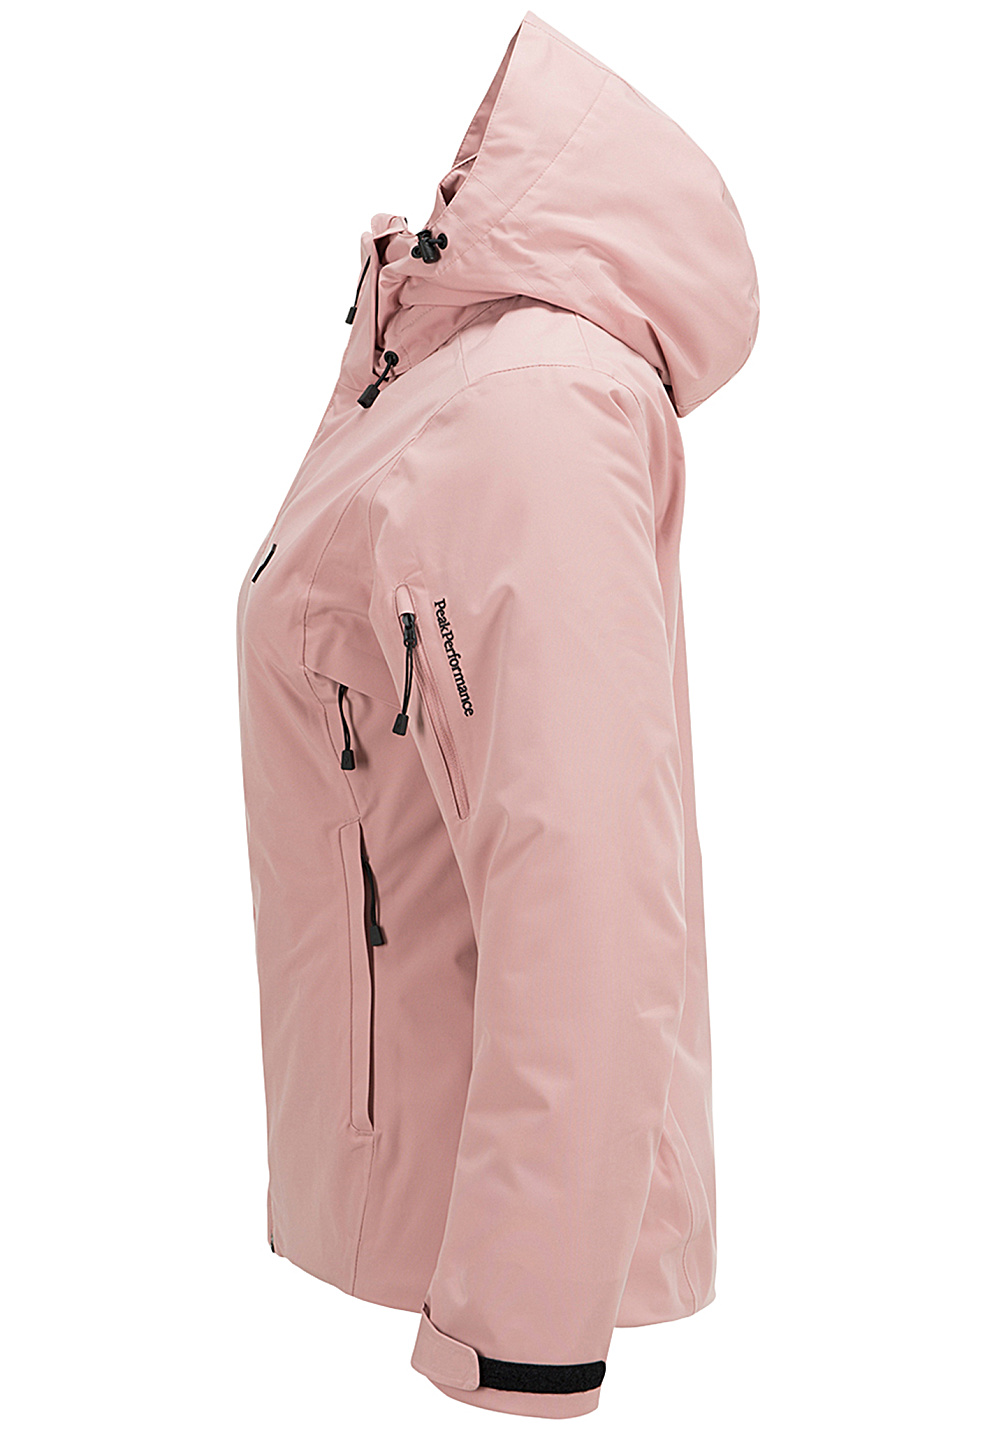 7e64fa8a61 Next. This product is currently out of stock. PEAK PERFORMANCE. Anima -  Outdoor Jacket for Women. €349.95